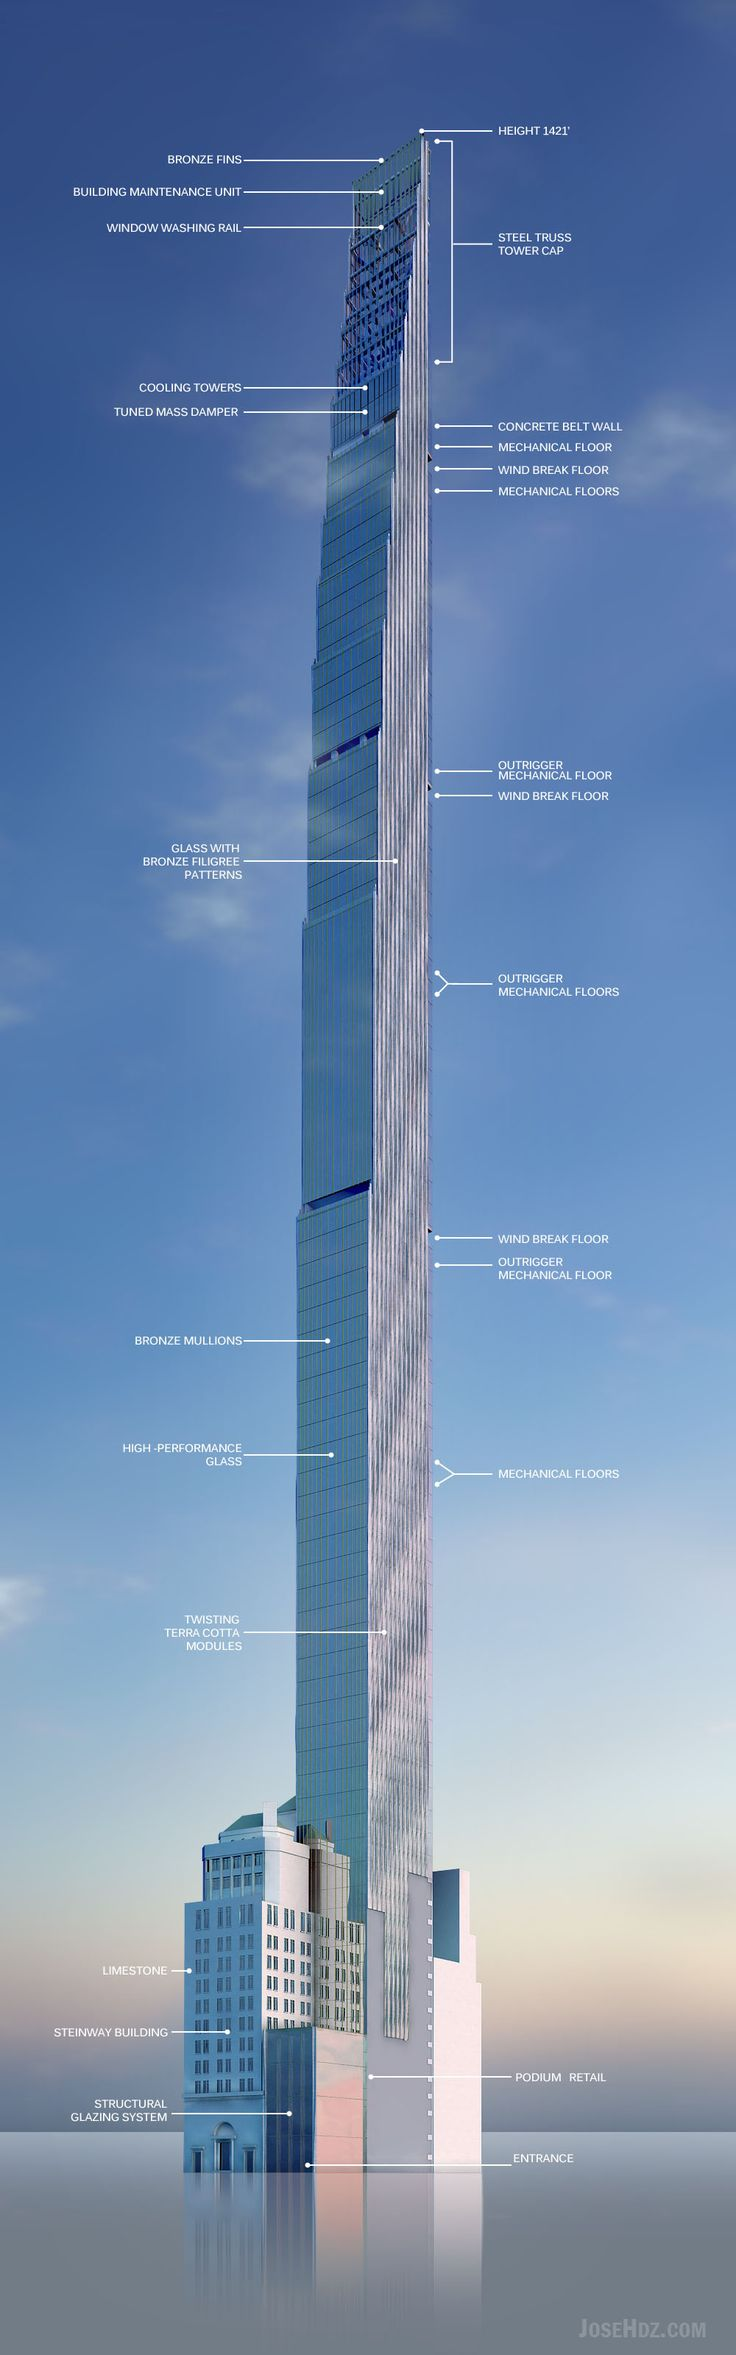 NEW YORK | 111 W 57th St | 1,438 FT | 82 FLOORS. - Page 74 - SkyscraperPage Forum